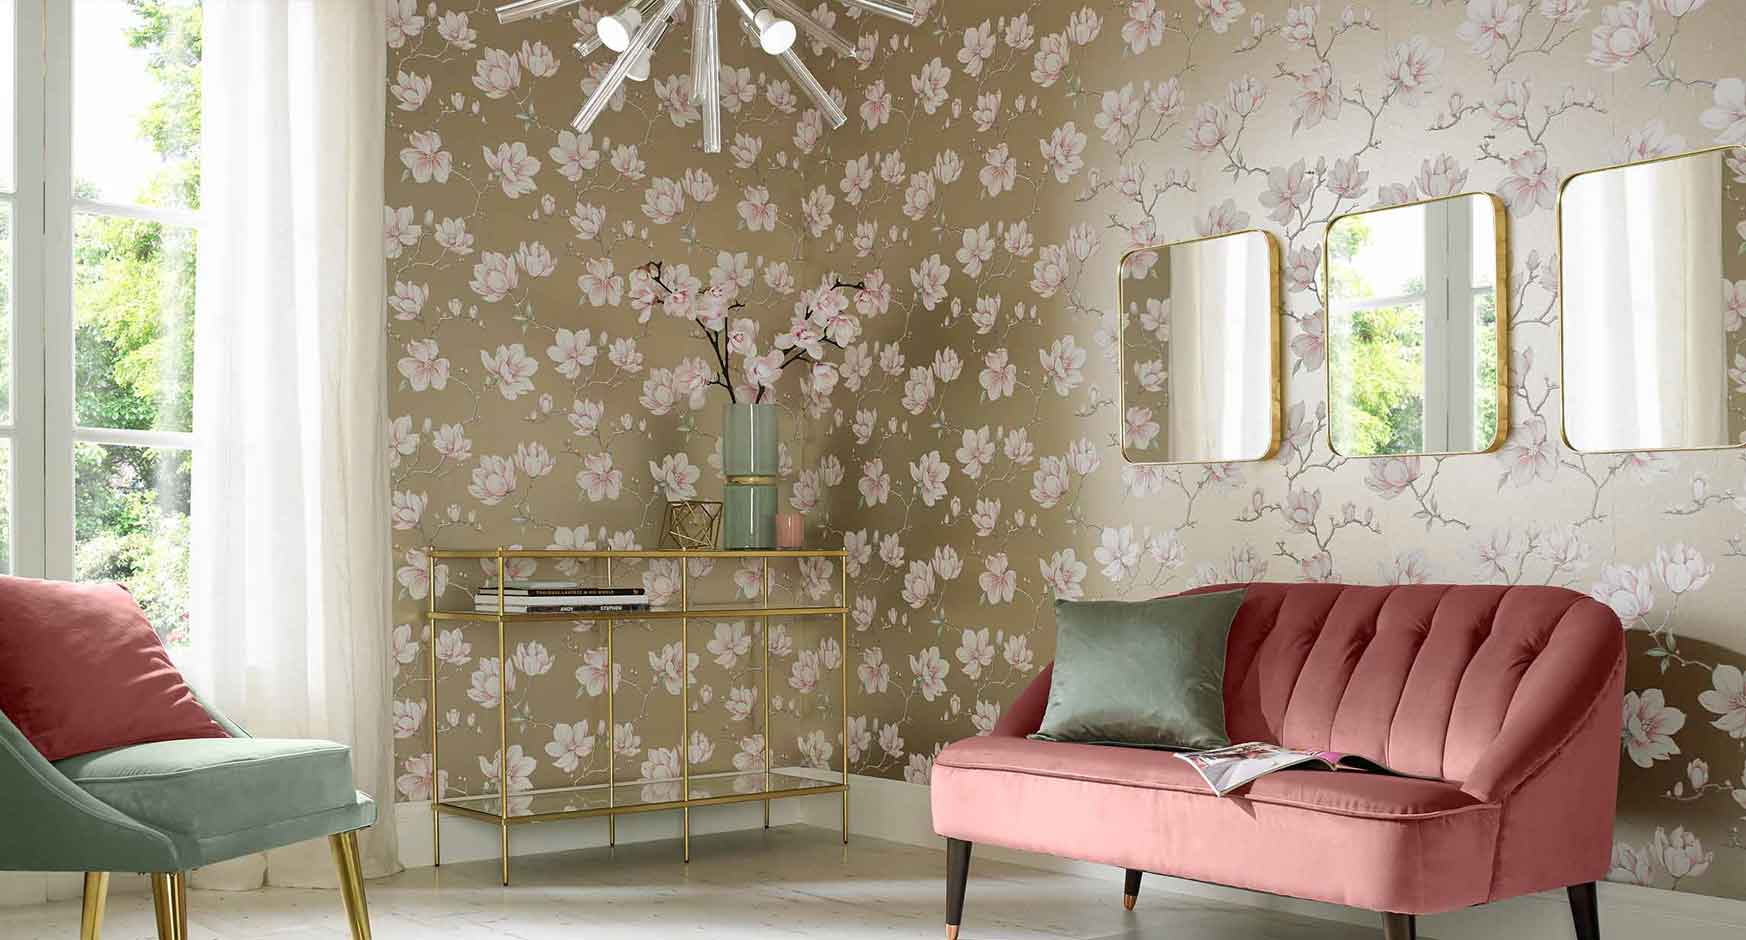 Living room ideas decorations living room wallpaper for Home wallpaper designs for living room